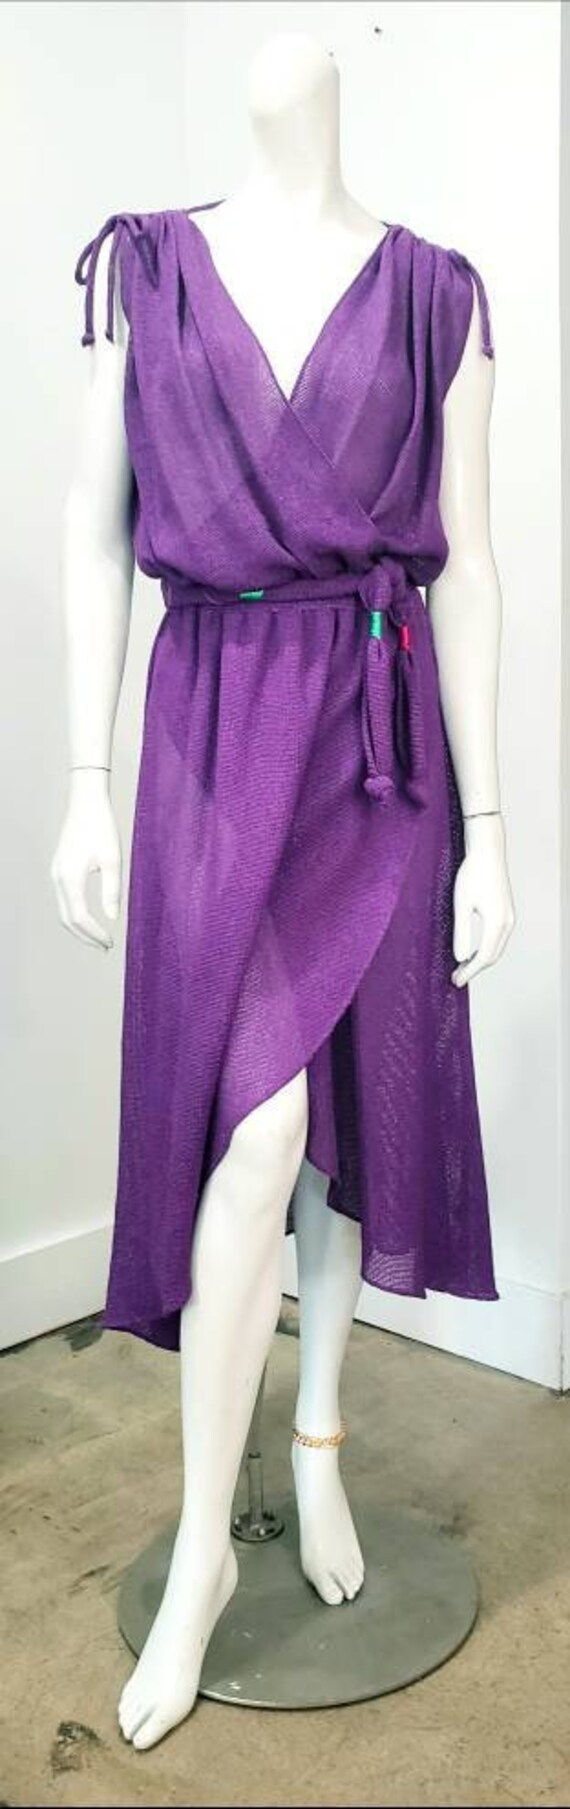 Vintage 70s DISCO Purple Studio 54 Dancing Woven D